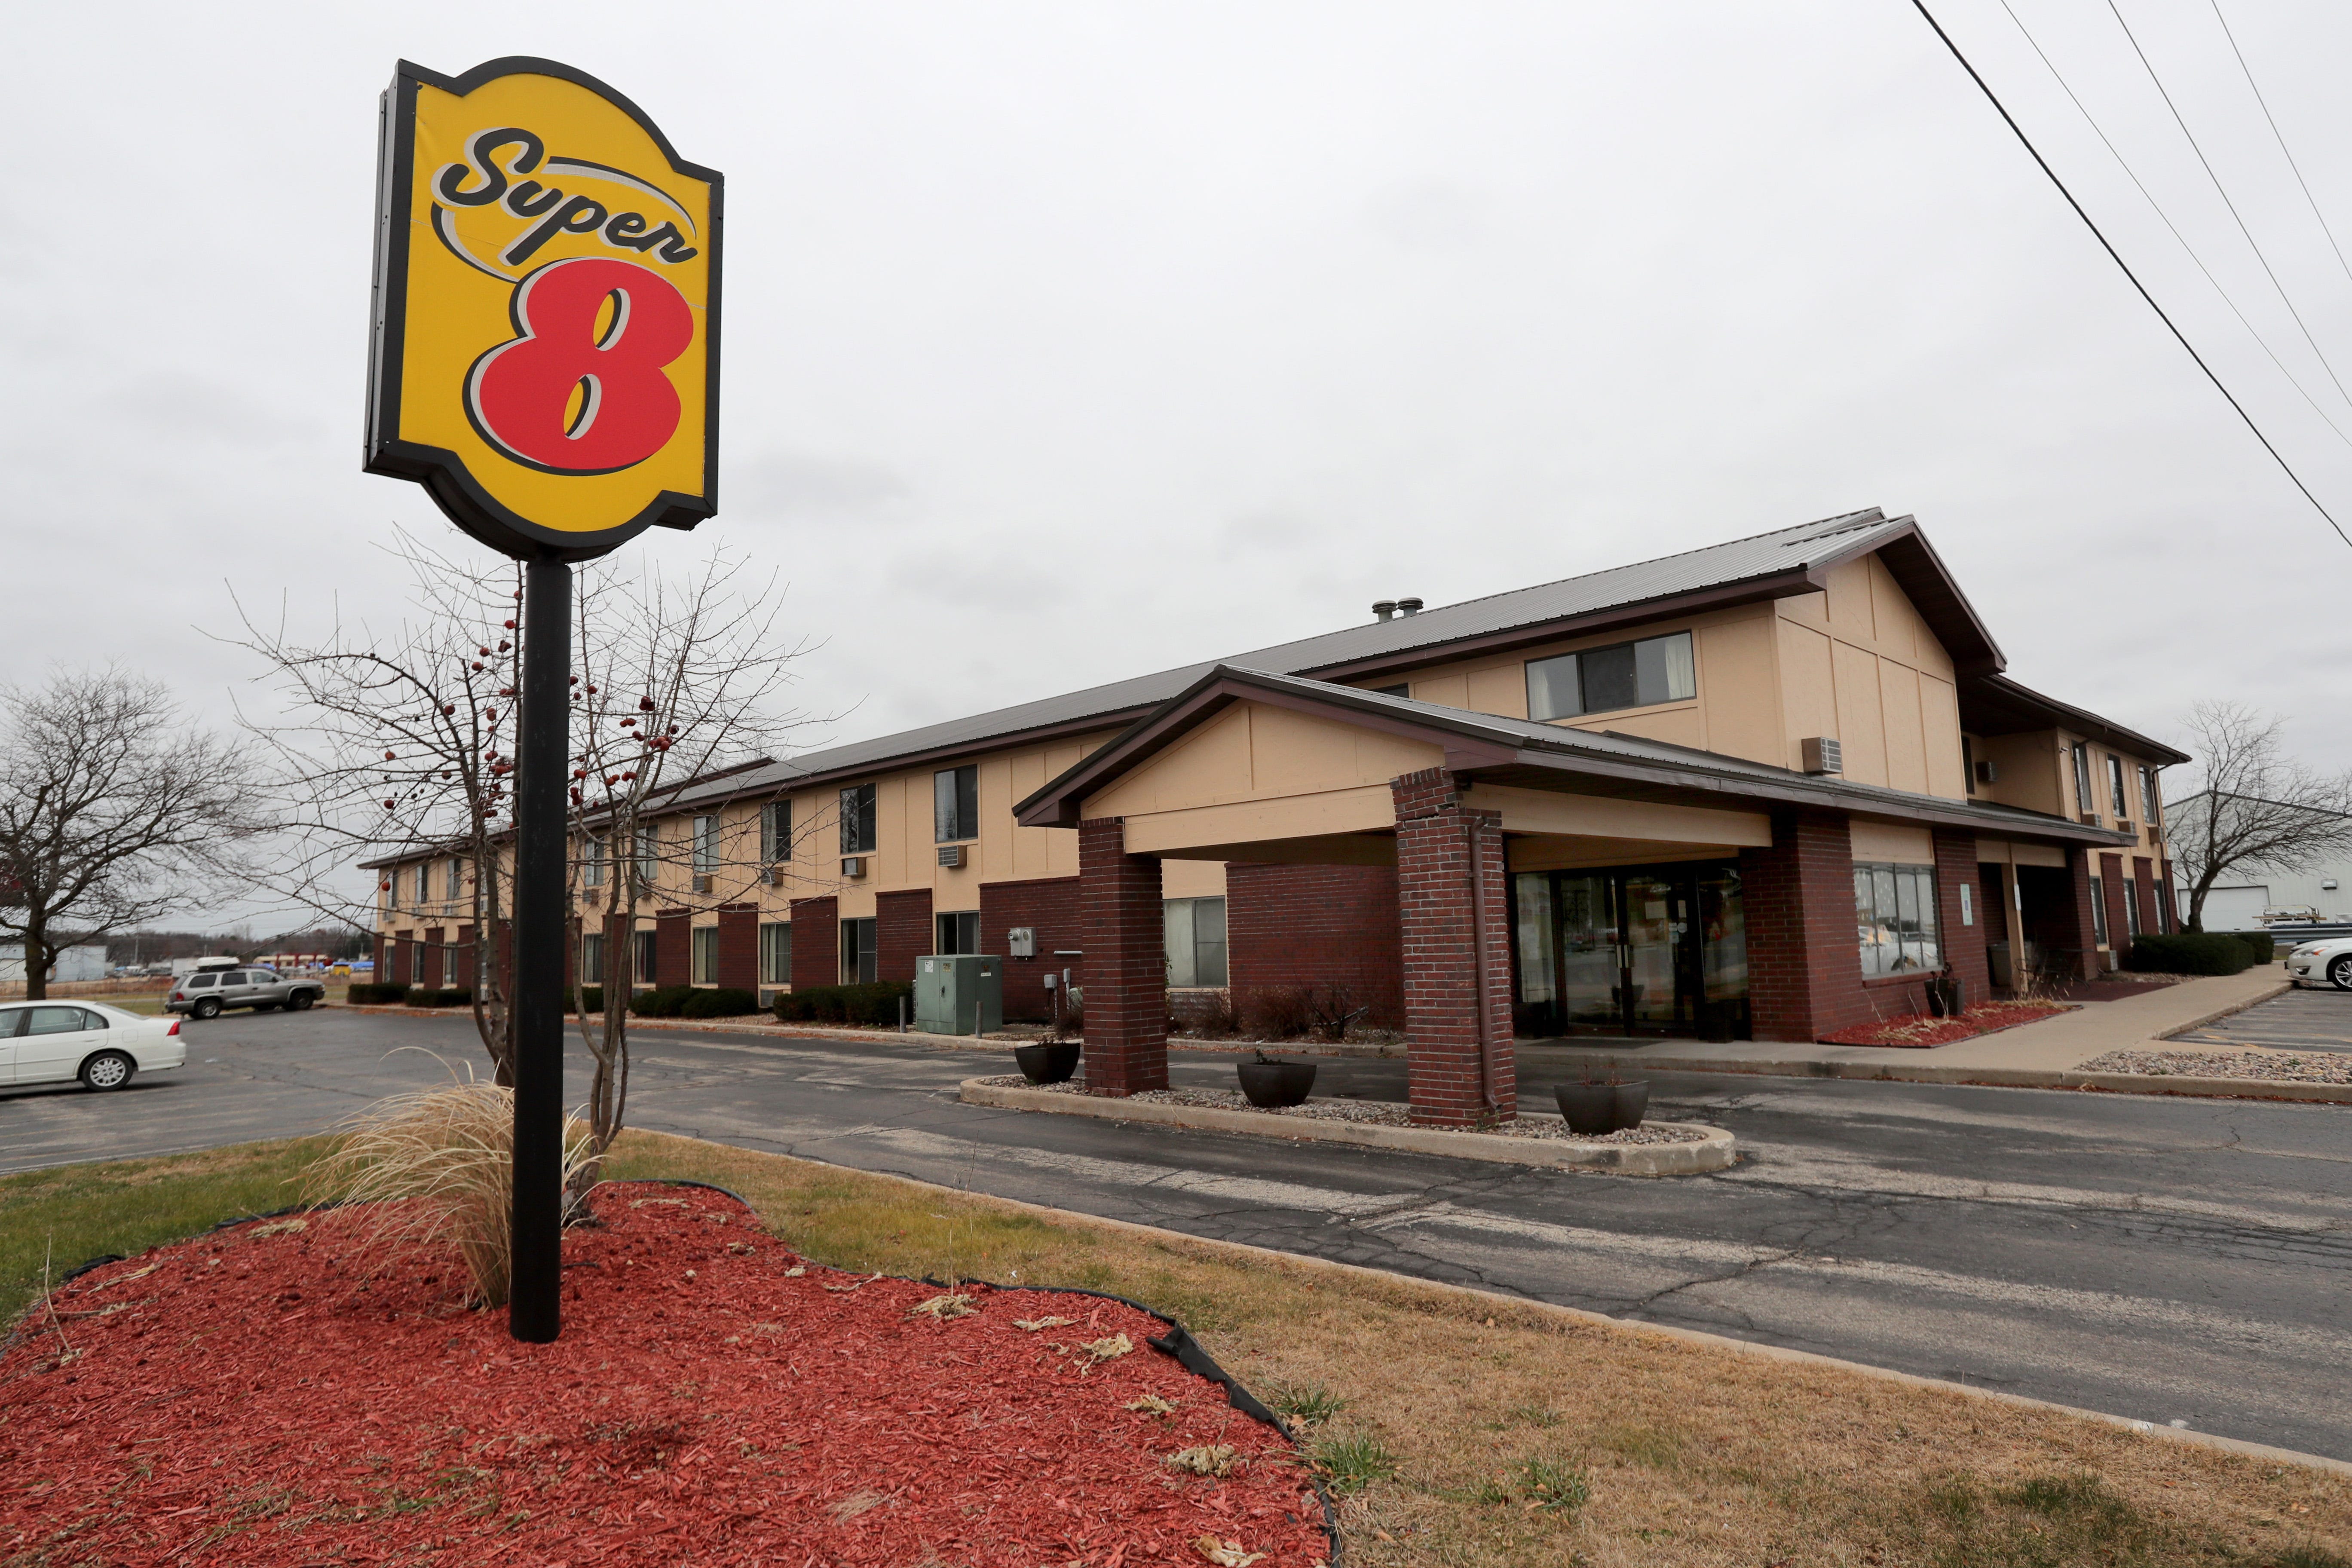 Many of the workers were isolated at this Super 8 motel in Shawano after they contracted Covid-19. The Journal Sentinel has confirmed the deaths of 11 Seneca Foods Gillett plant migrant workers from COVID-19 through death records or interviews with relatives and co-workers. But some employees said that up to 10 of them could have died of the virus.